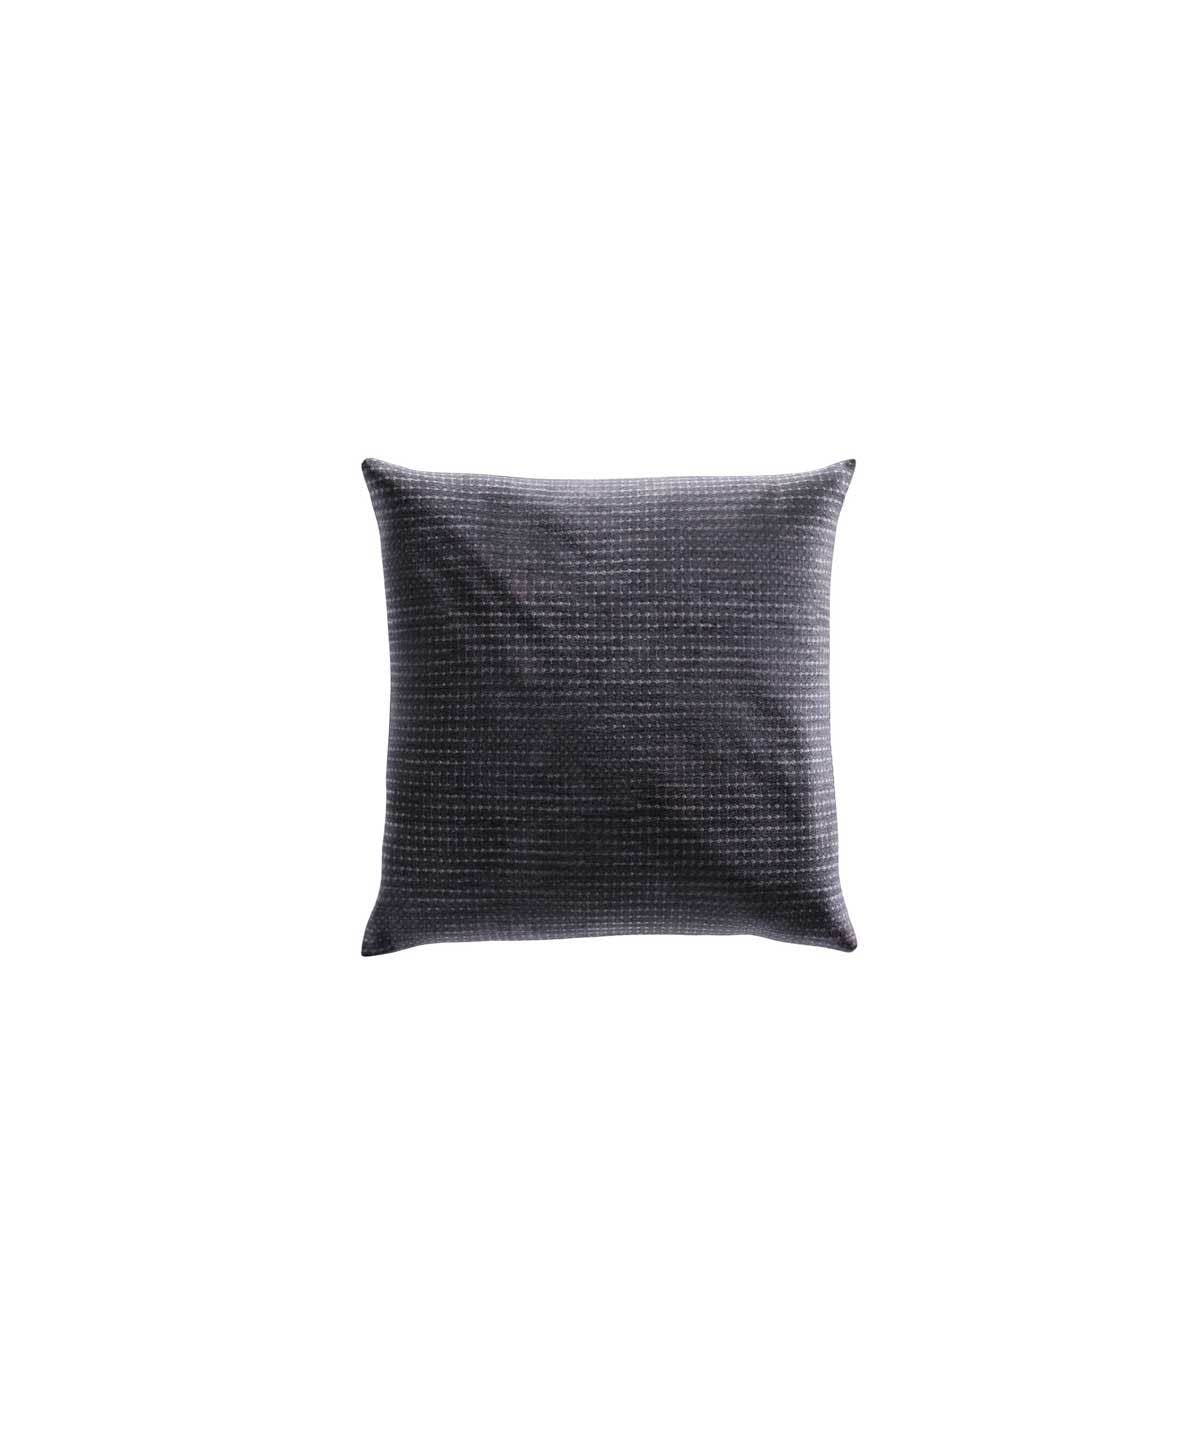 "16"" Throw Pillow in Ink by TRNK 